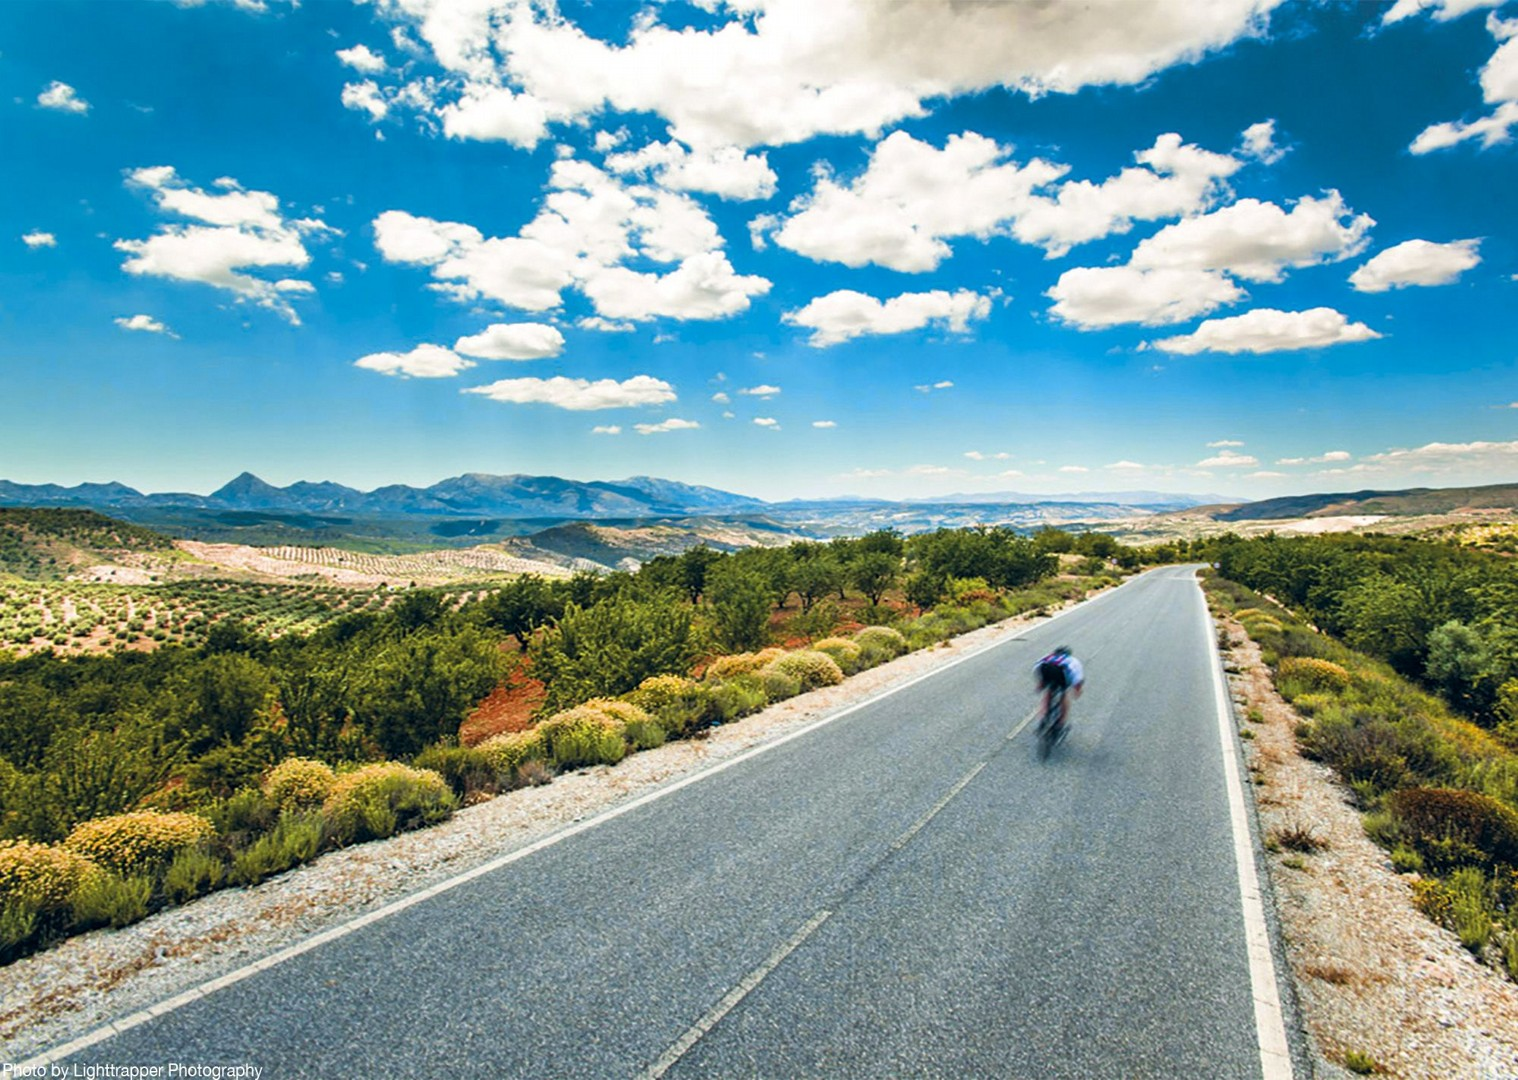 southern-spain-road-cycling-smooth-tarmac-incredible-views.jpg - Southern Spain - Andalucia - Los Pueblos Blancos - Guided Road Cycling Holiday - Road Cycling